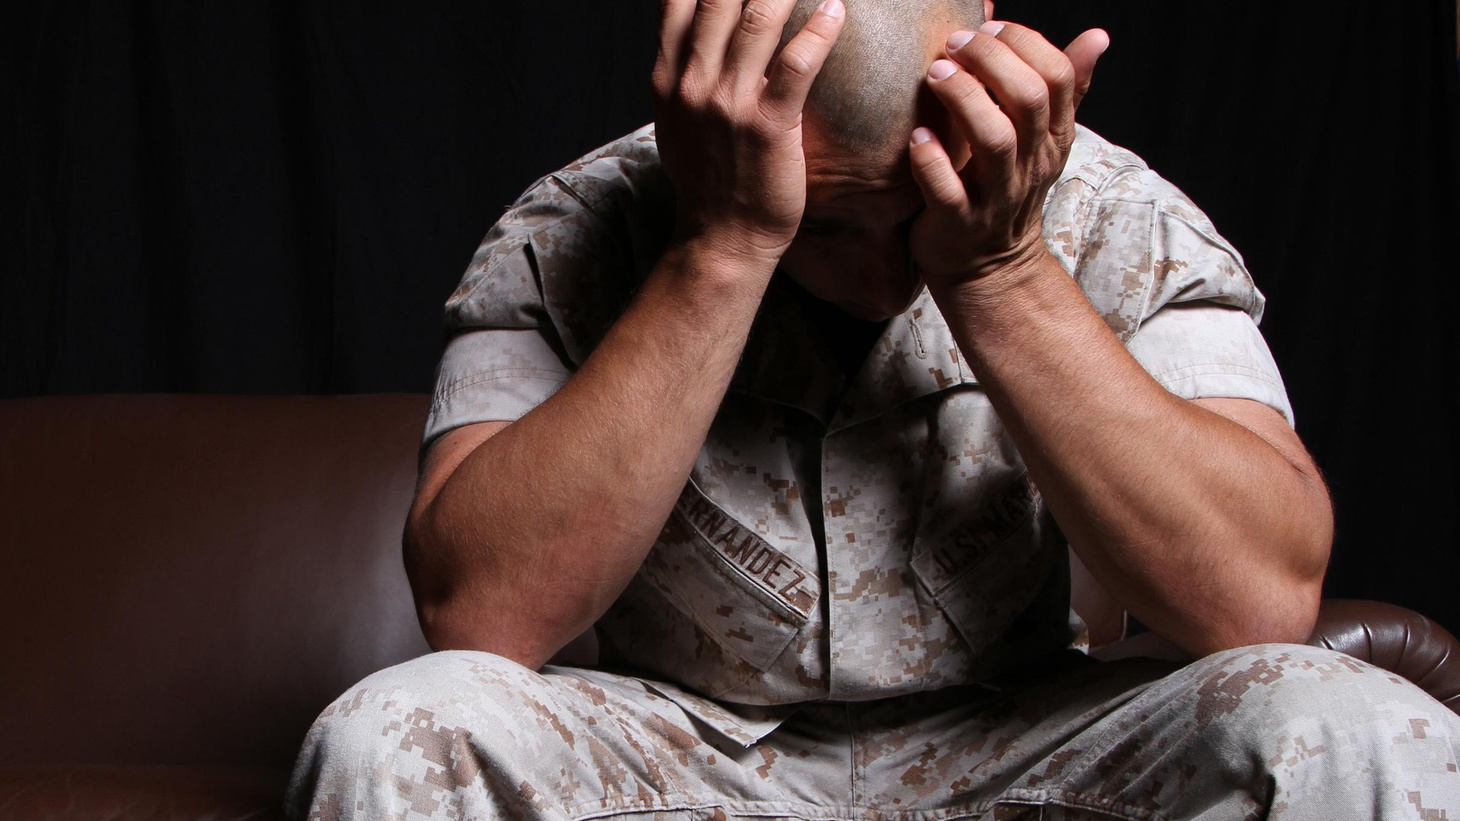 American soldiers have been dying at the rate of 22 every day — from suicide. What's the Pentagon doing to cope with mental illness, after combat and before enlistment?